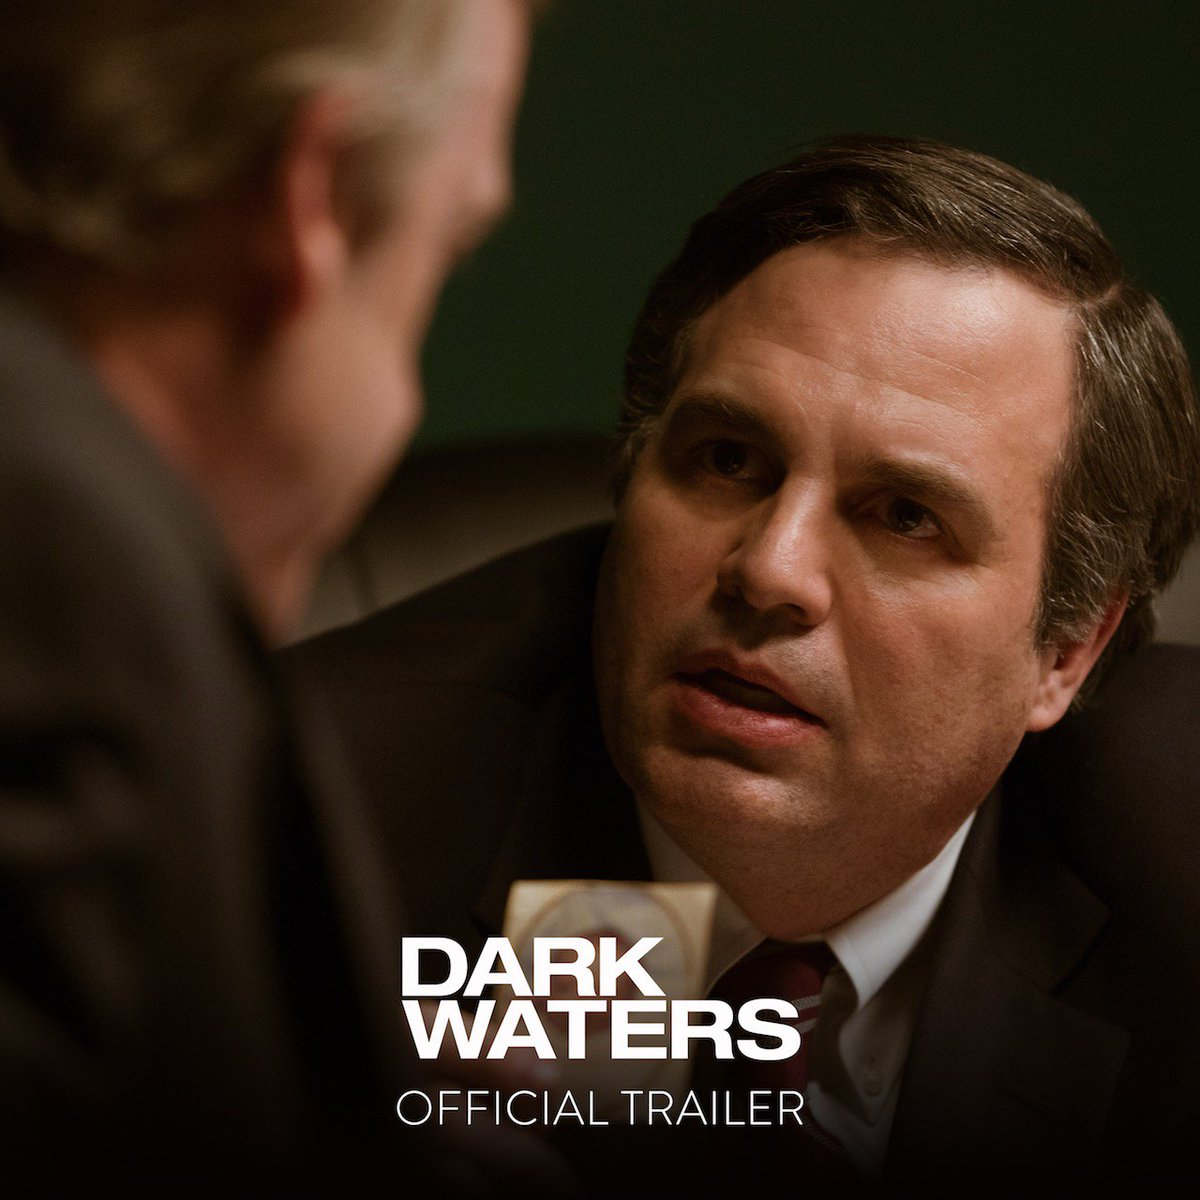 The truth has a man on the inside. Inspired by true events, watch the first trailer for #DarkWaters